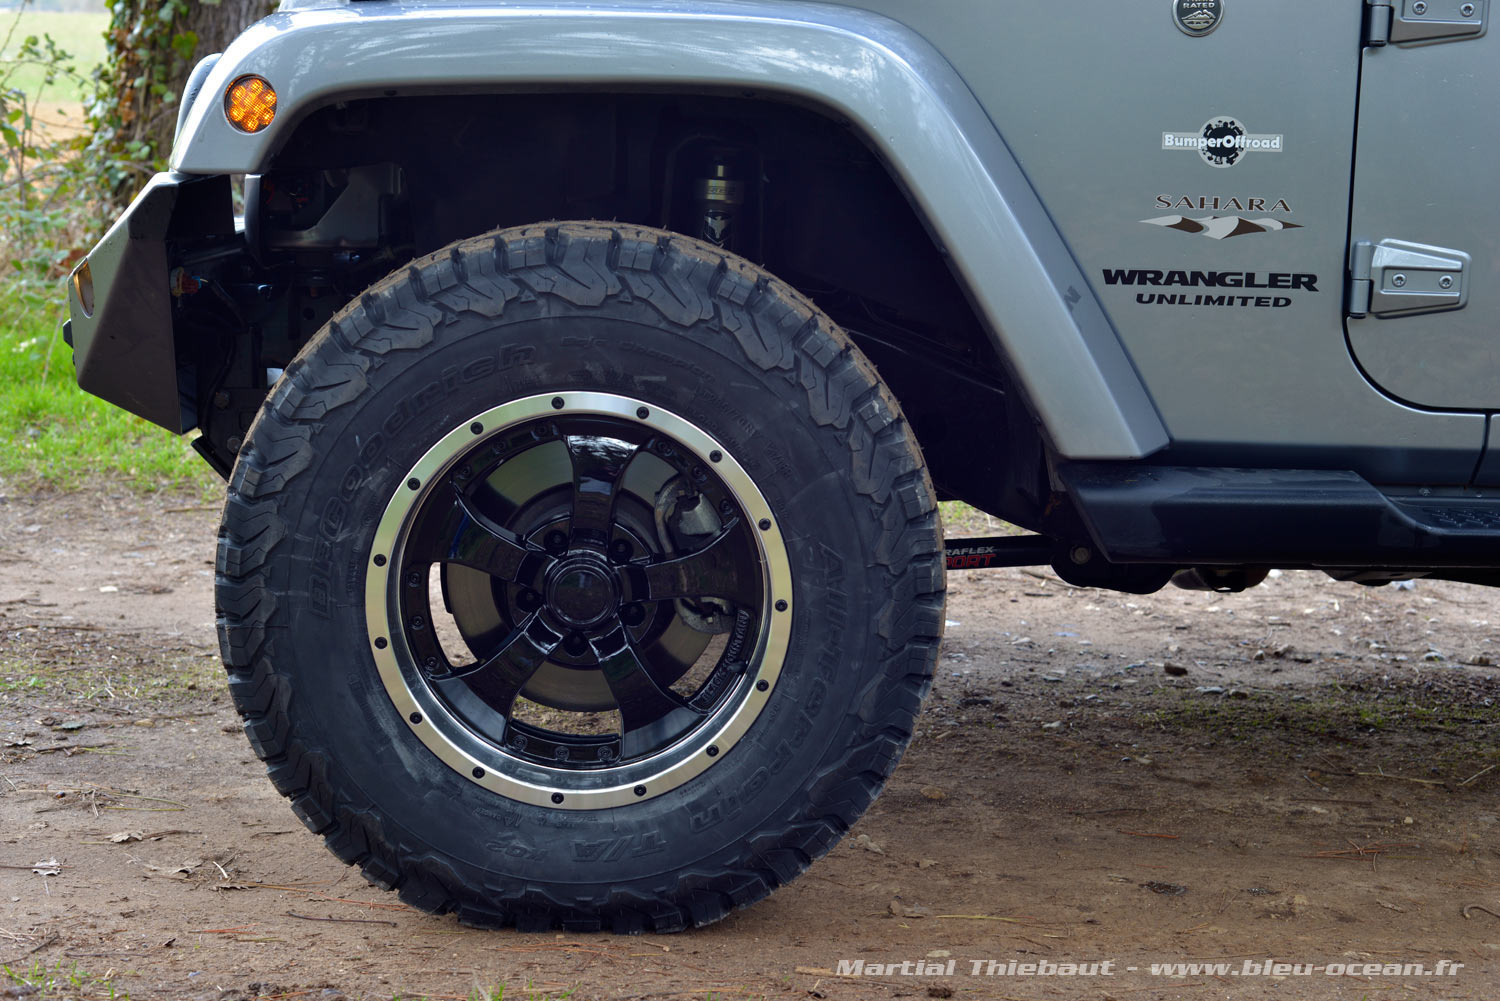 Jk Sahara 2.8 by Bumperoffroad